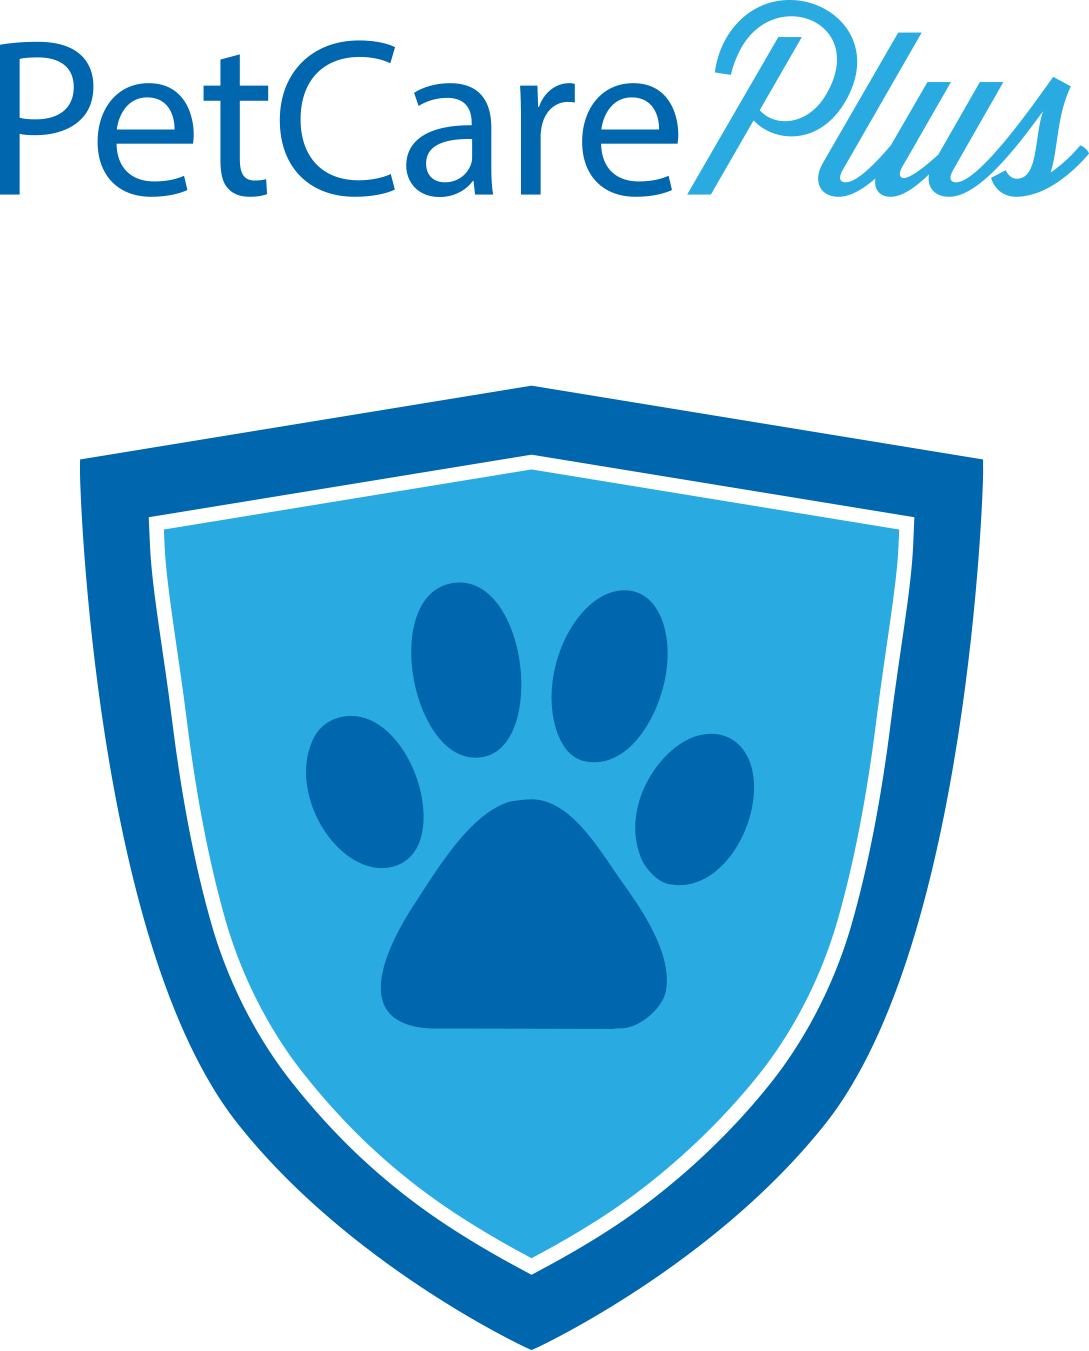 PetCare plus logo